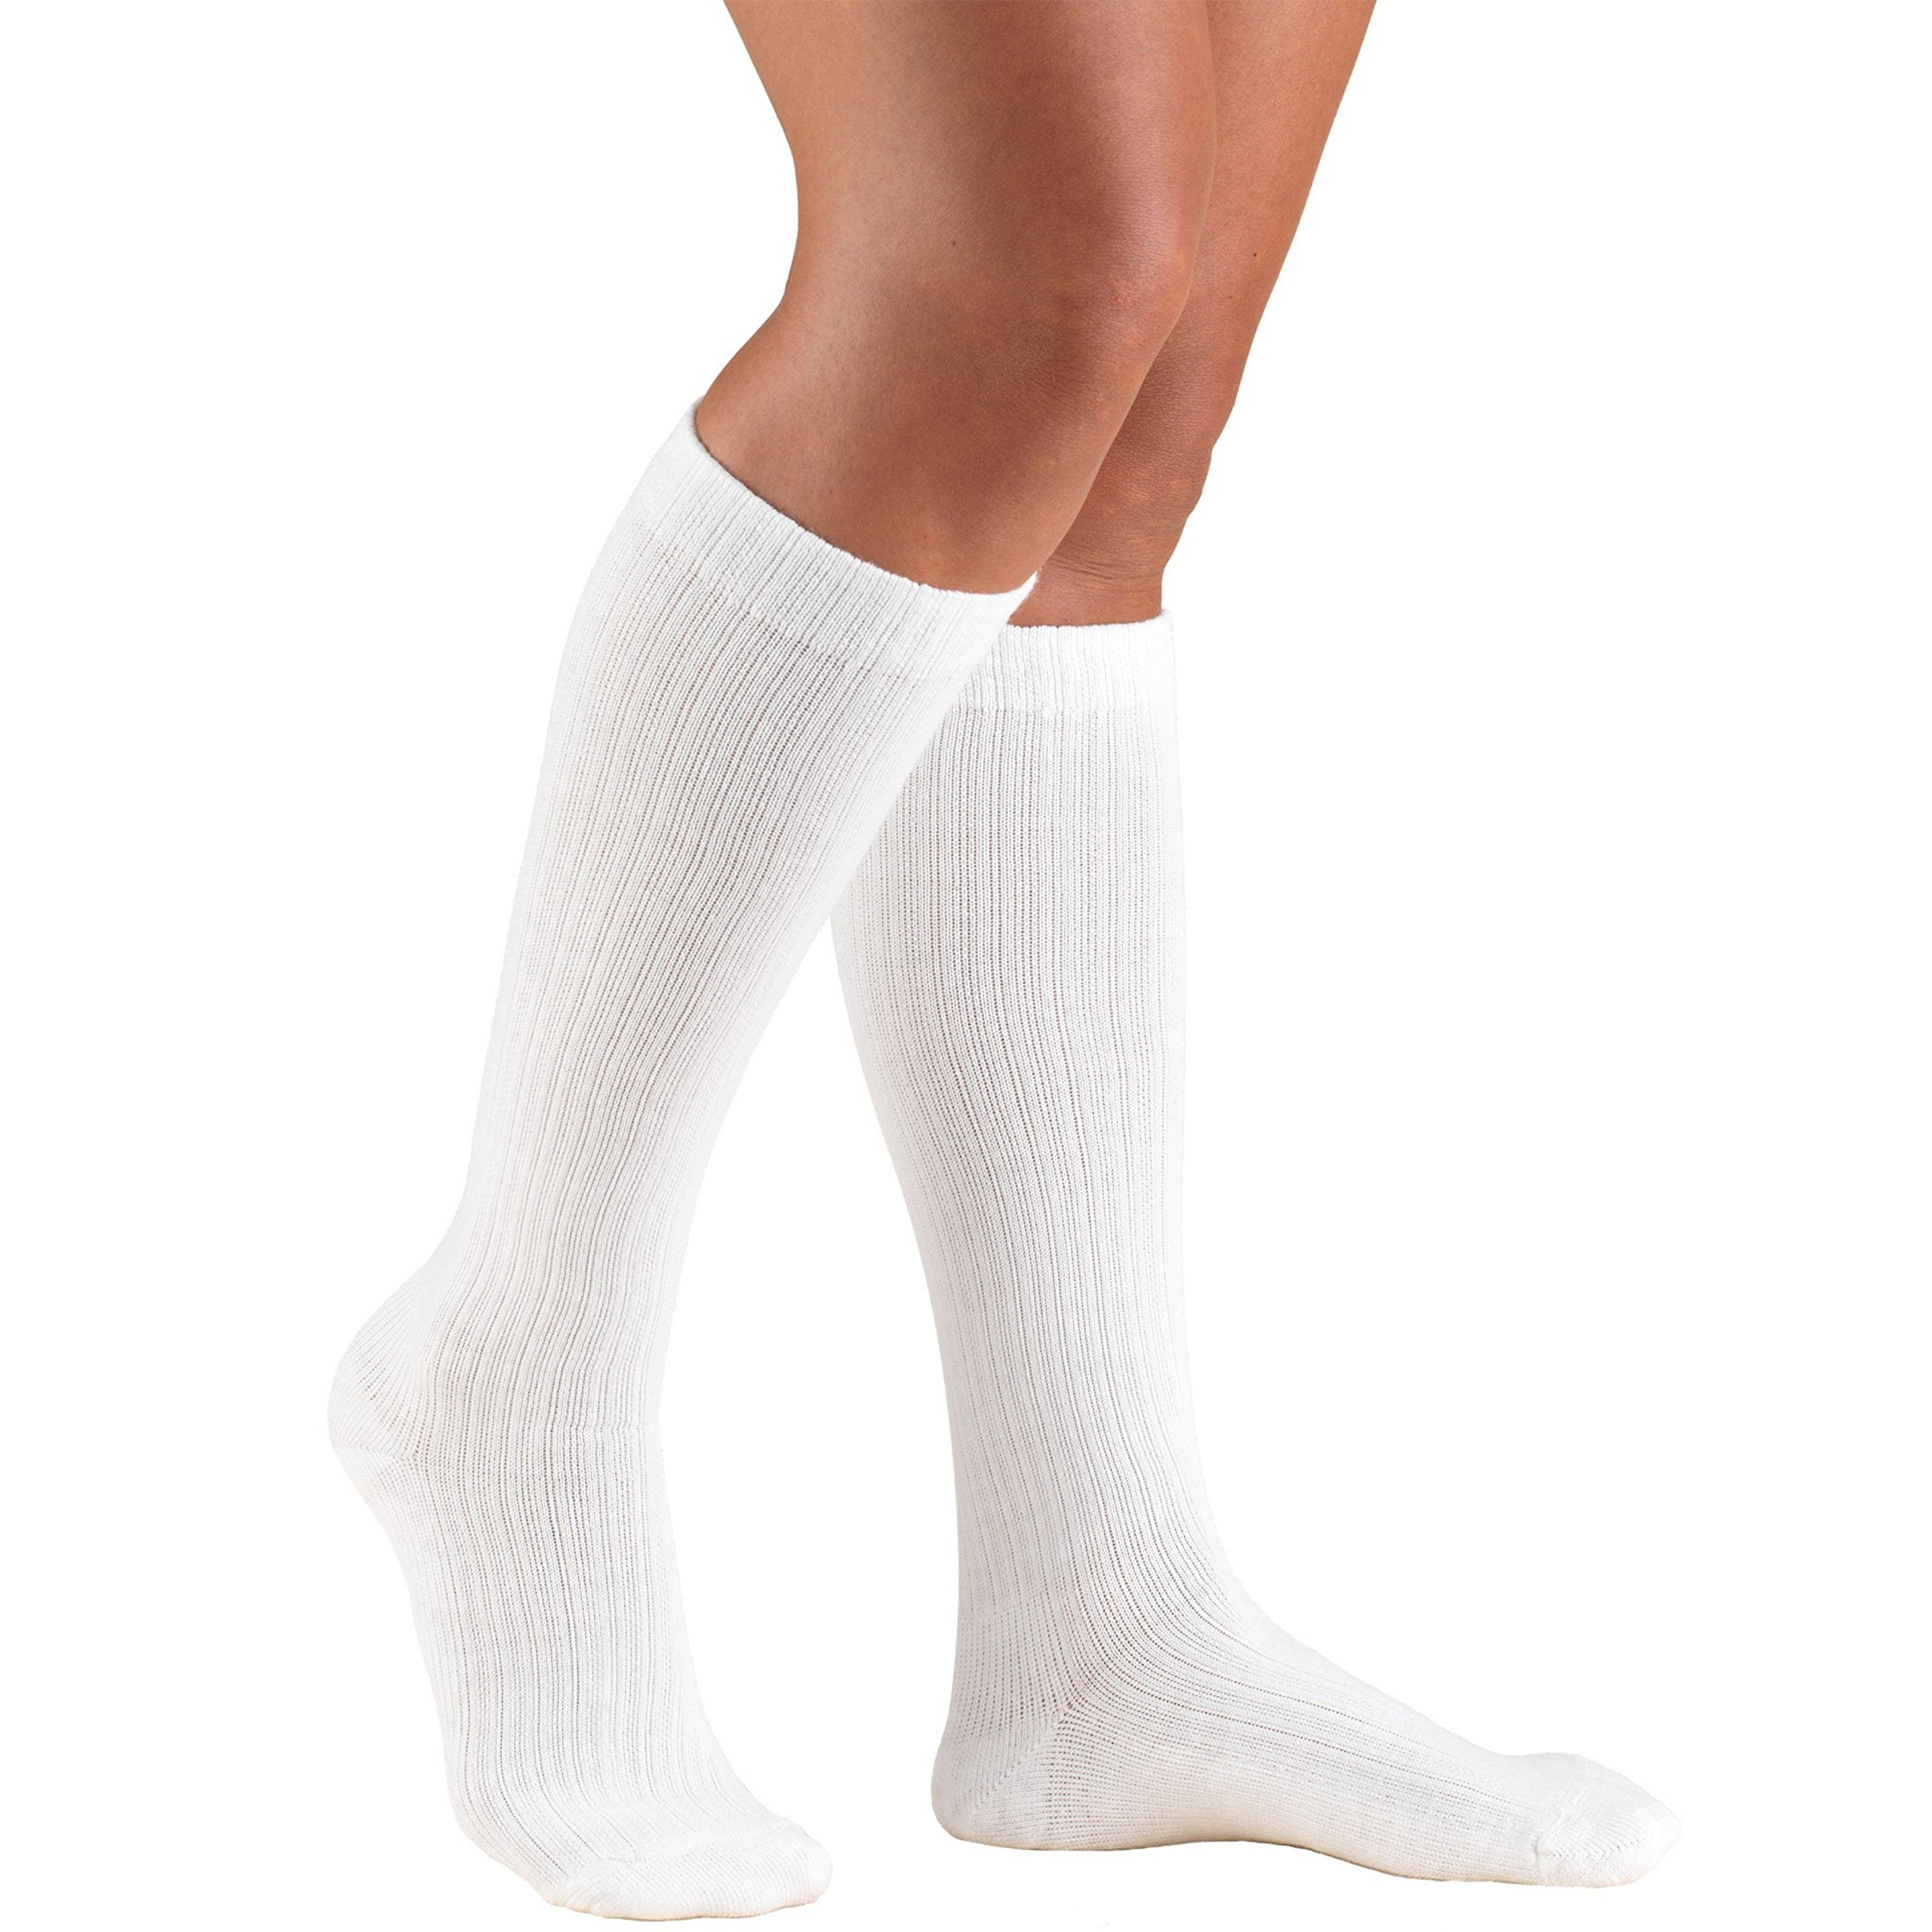 Truform Compression Socks for Women, 15-20 mmHg, Knee High, Cushion Foot, White, X-Large